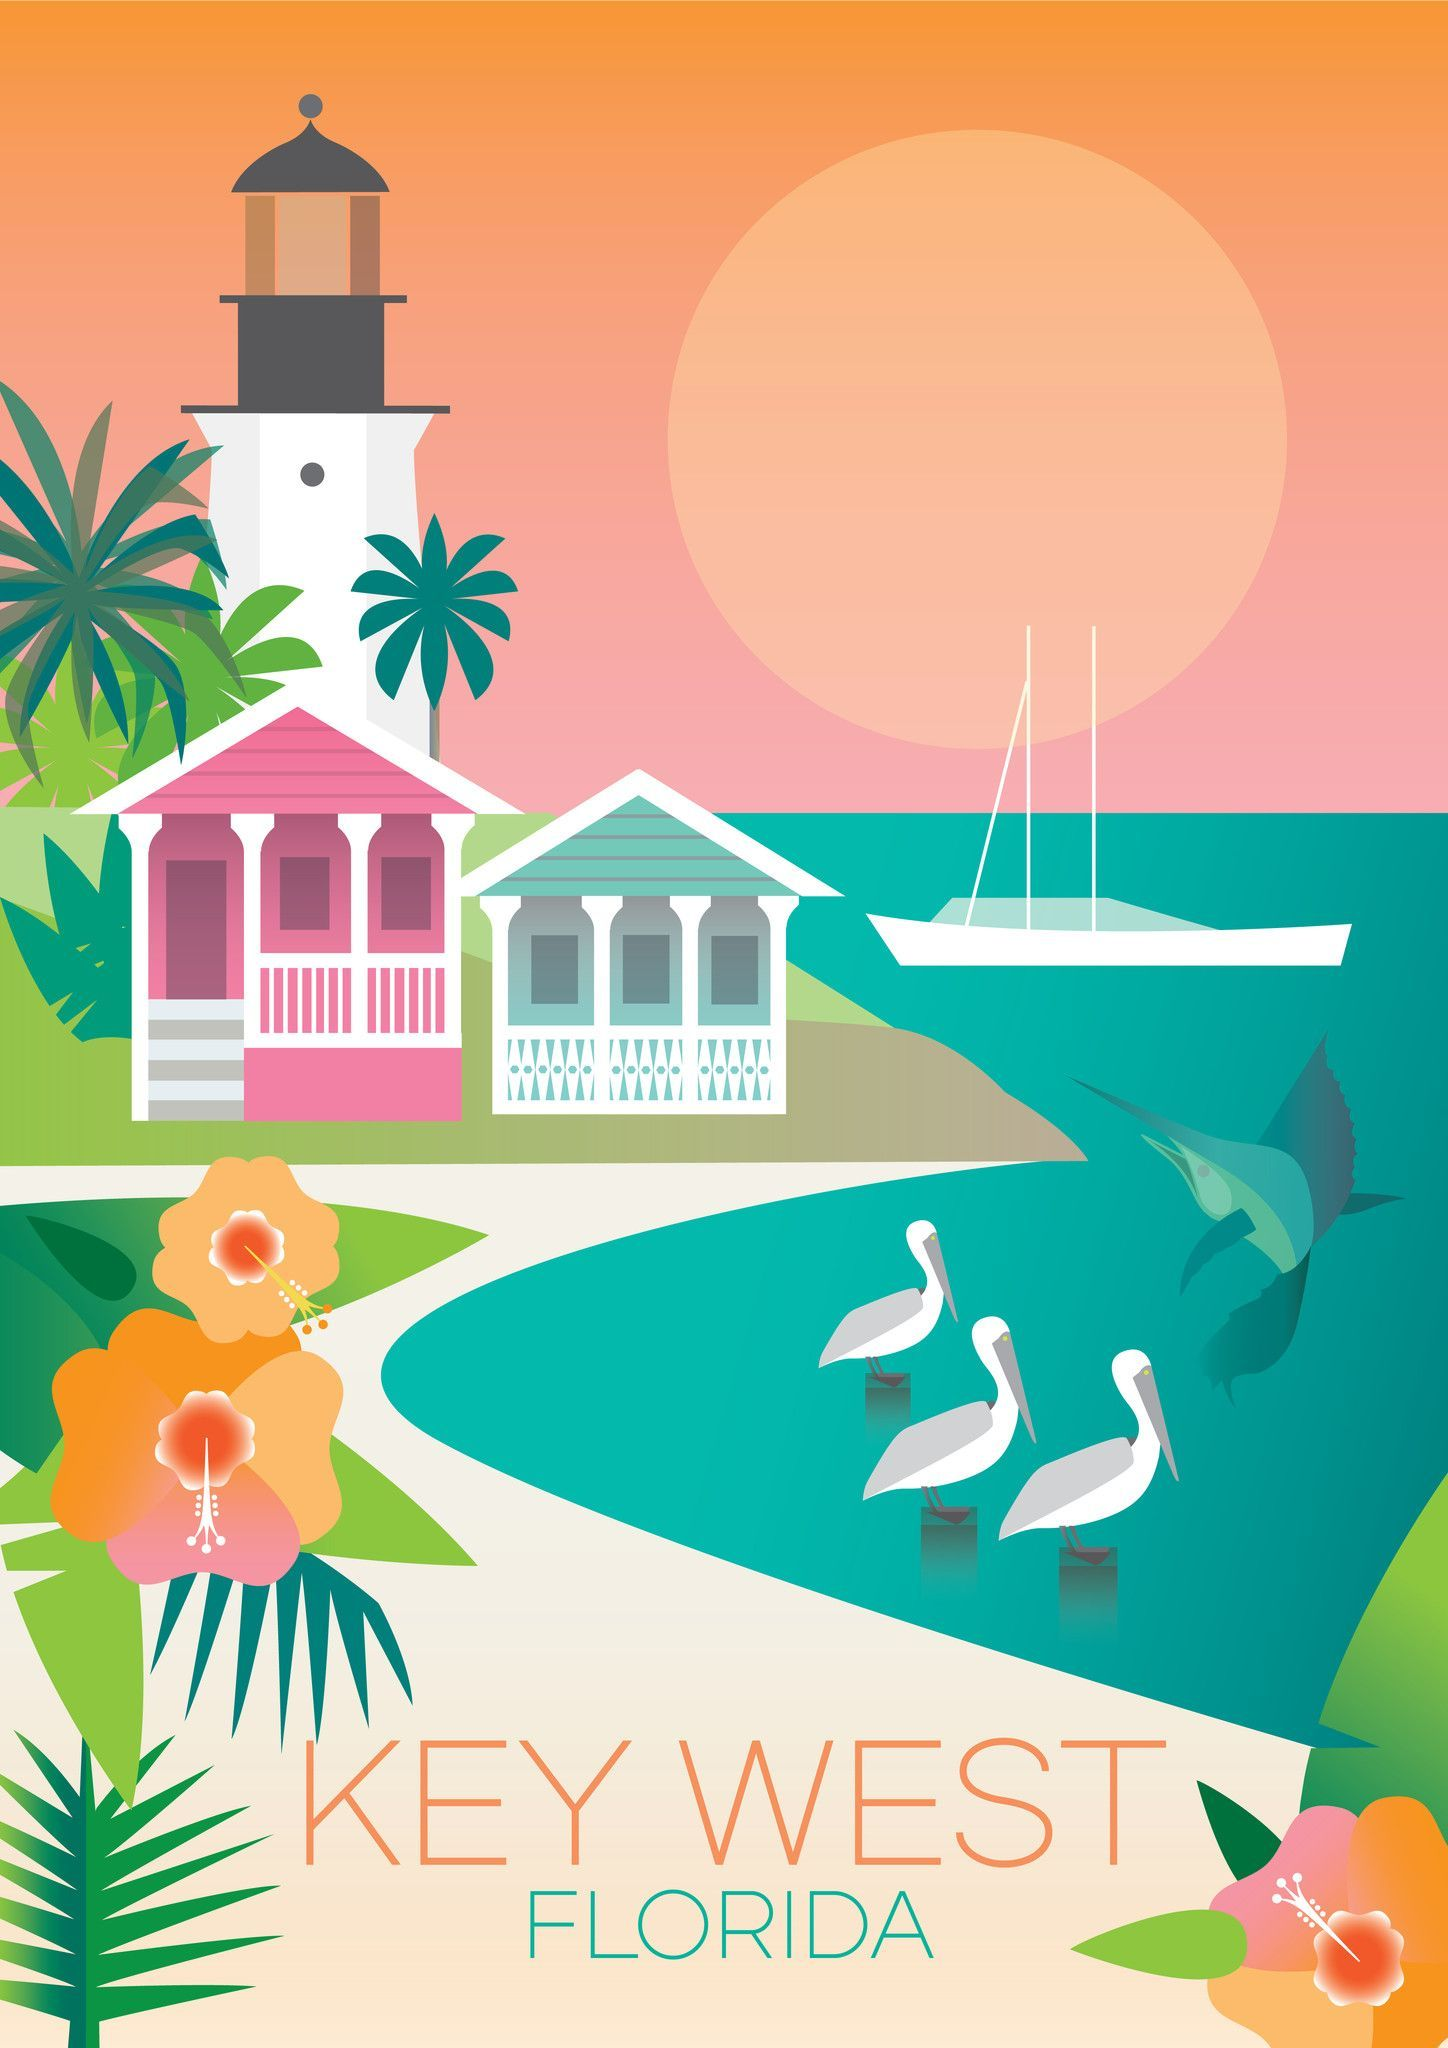 New Home Interior Design Key West Vacation Home: Vintage Travel Posters, Vintage Posters, Travel Posters